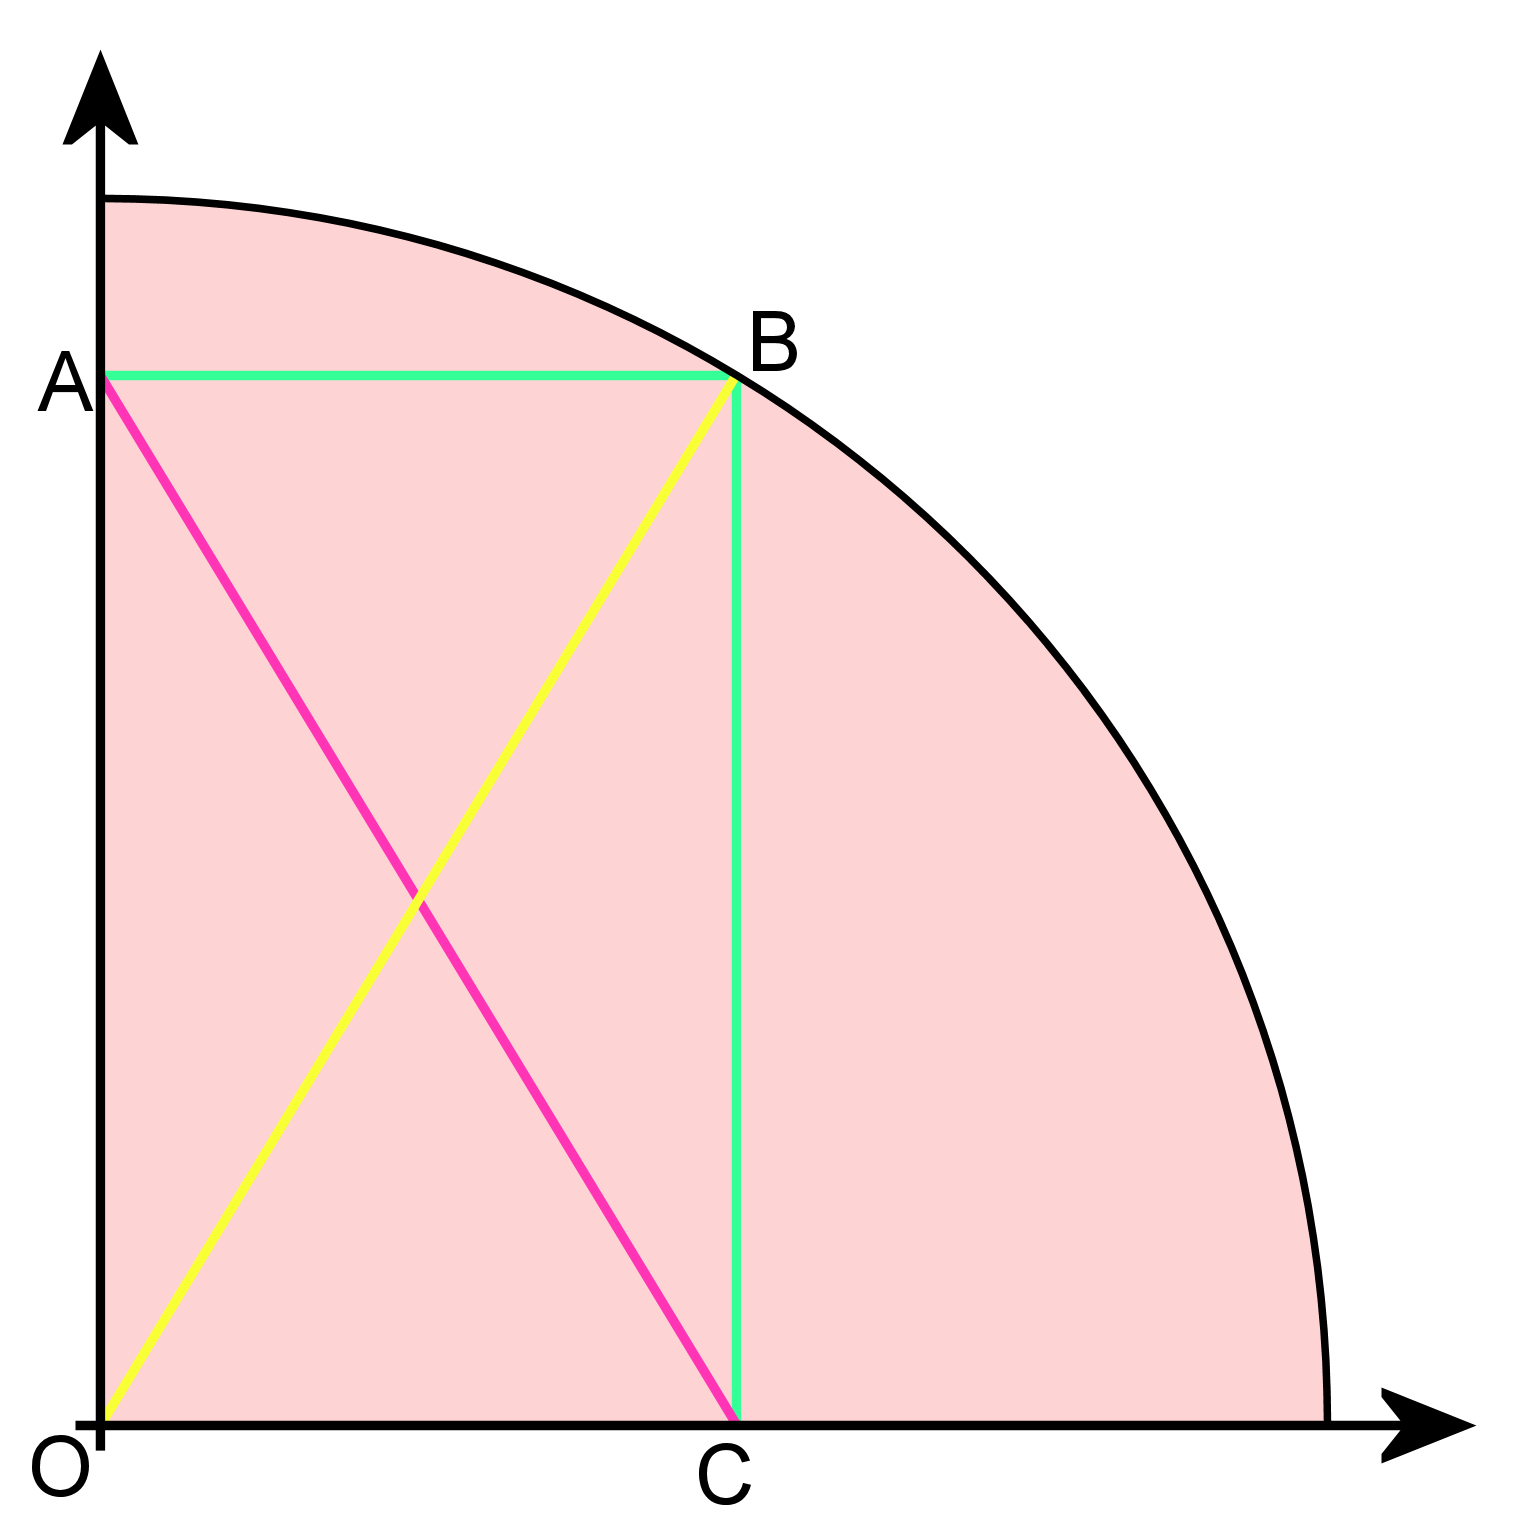 quadrant of a circle radius 'r' with a rectangle touching the perimeter of the circle. What is the length of the line labeled A-C